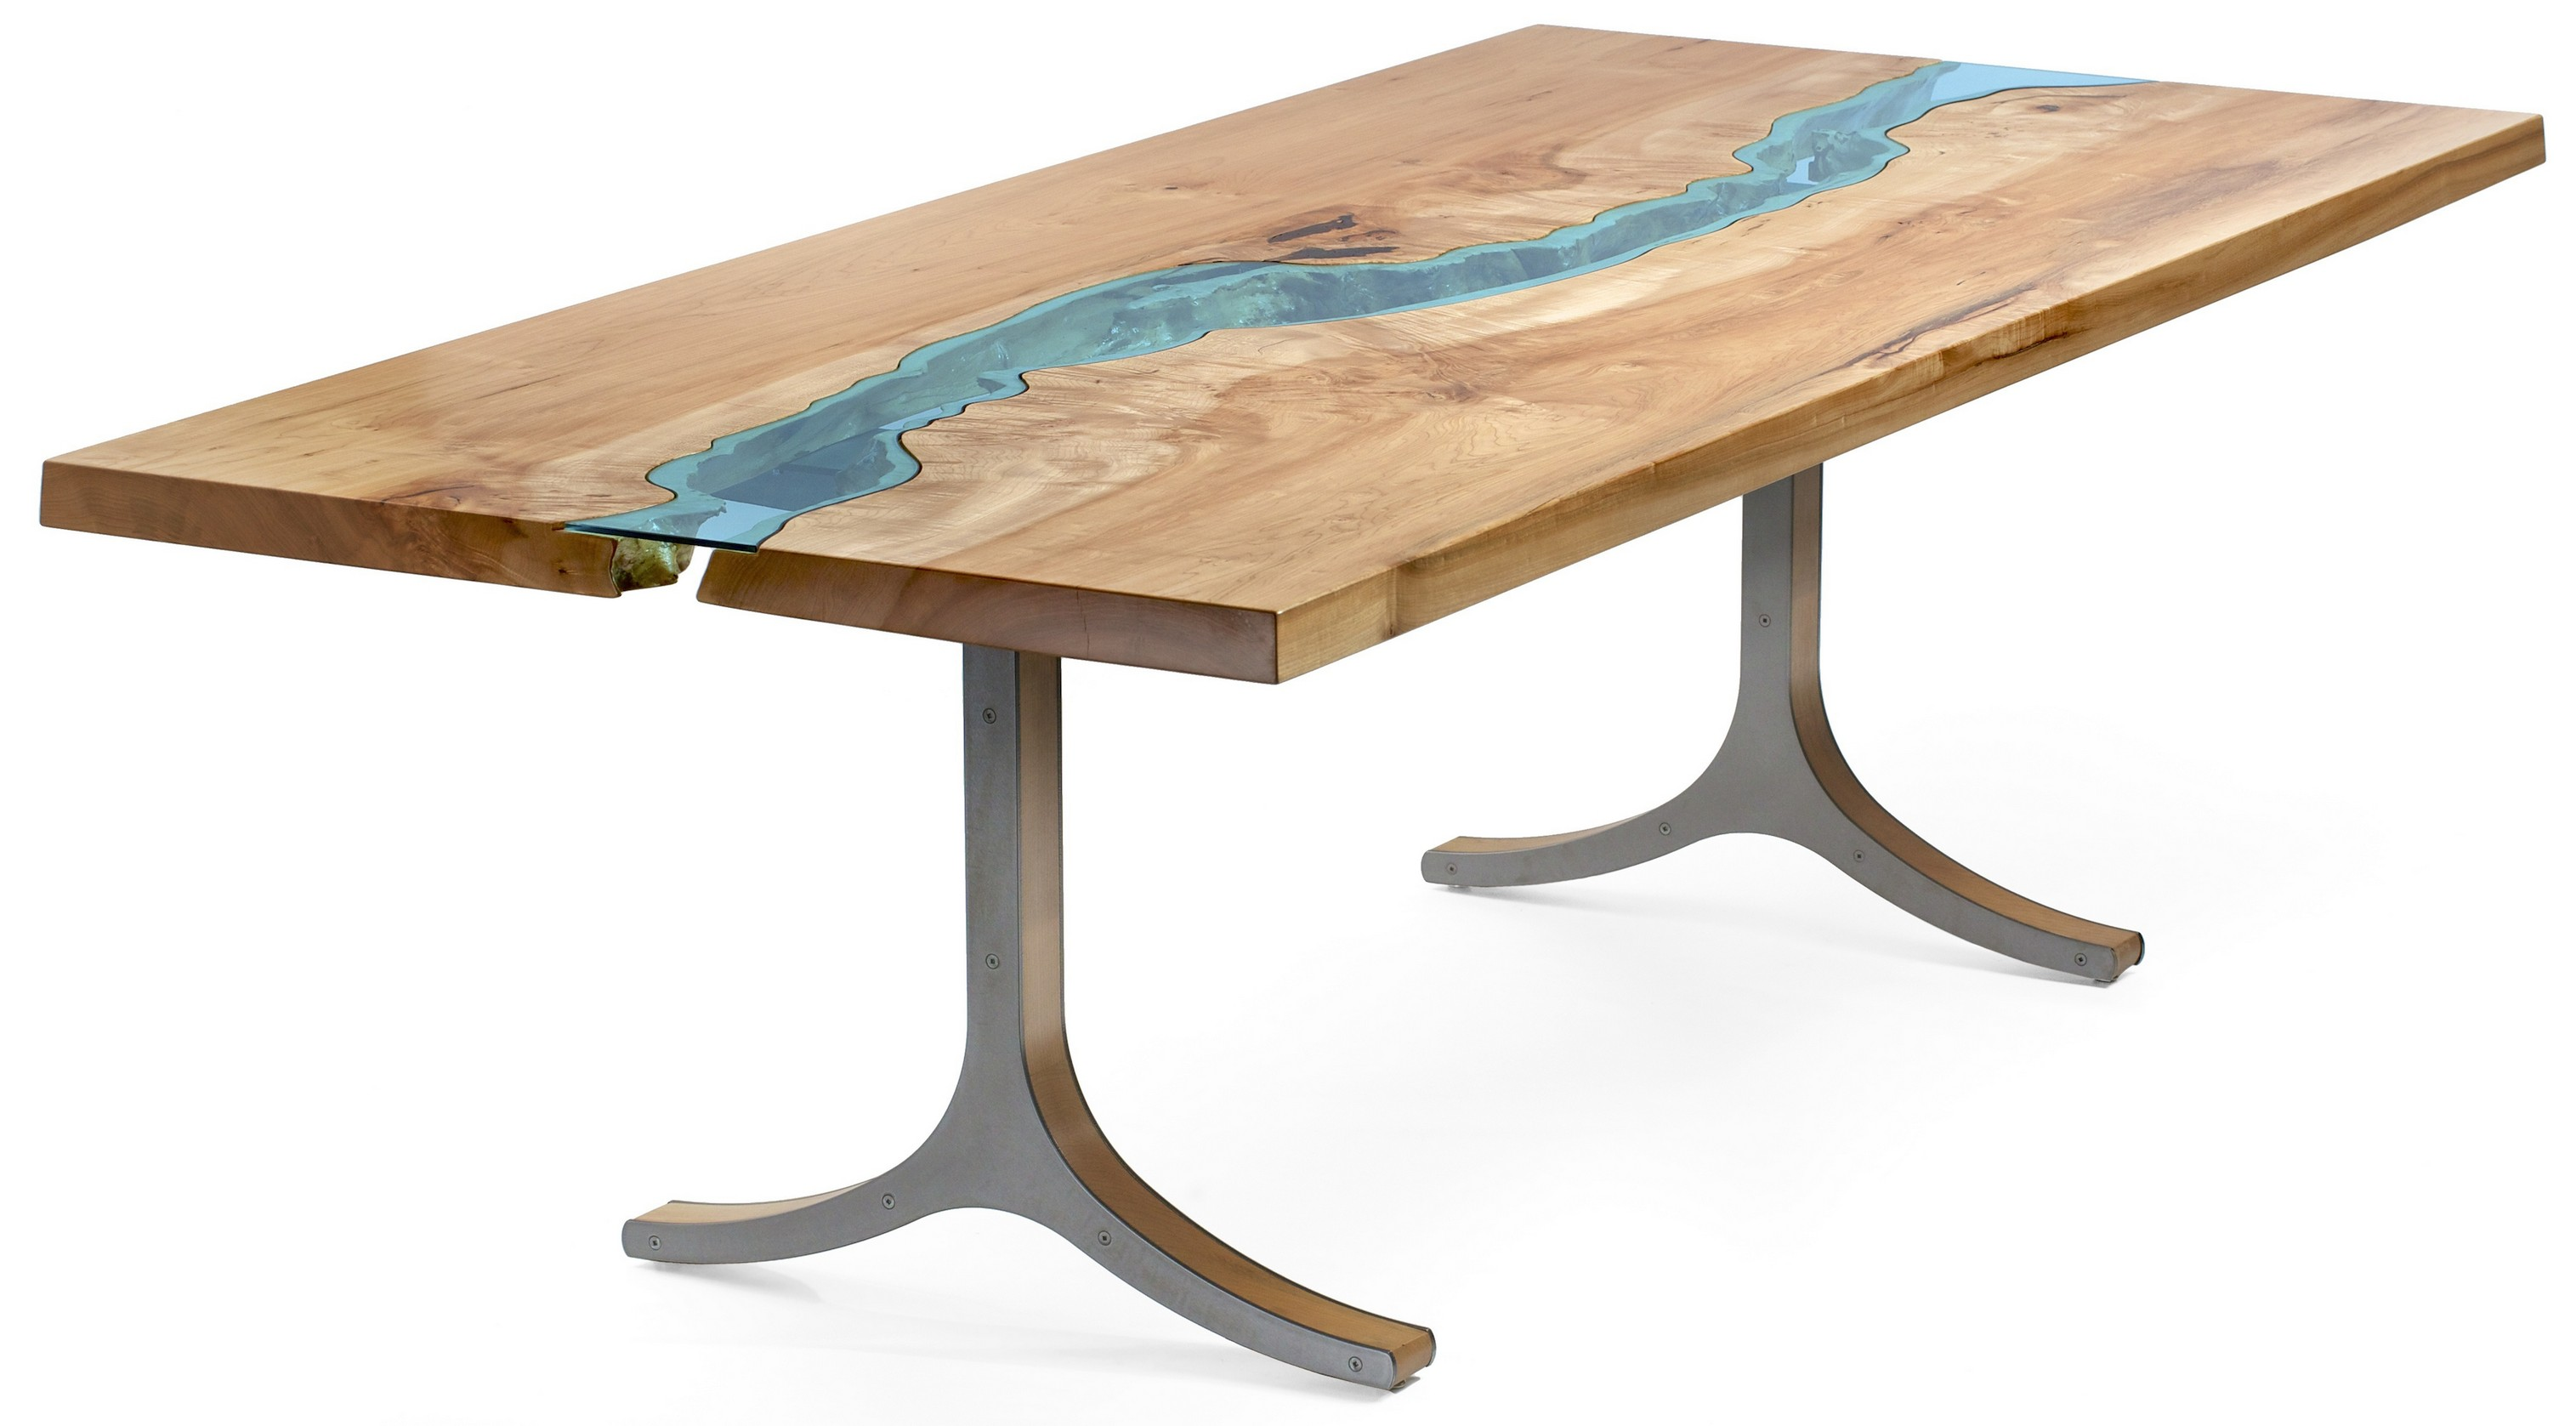 Table verre bois design Table en verre design